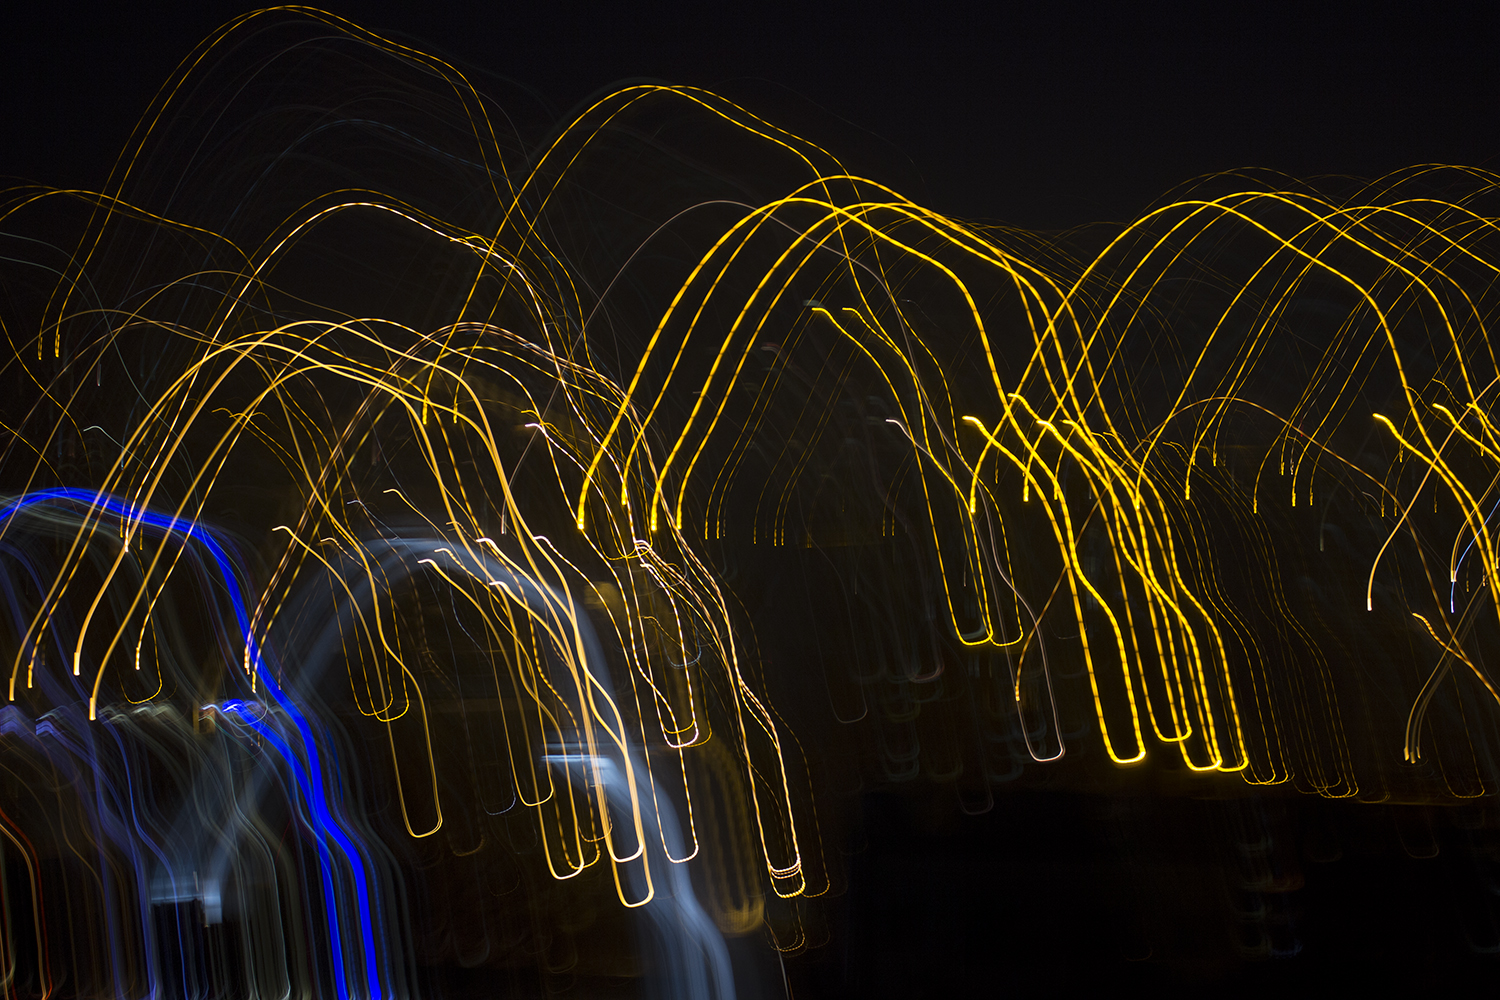 Night time photography 5 .jpg